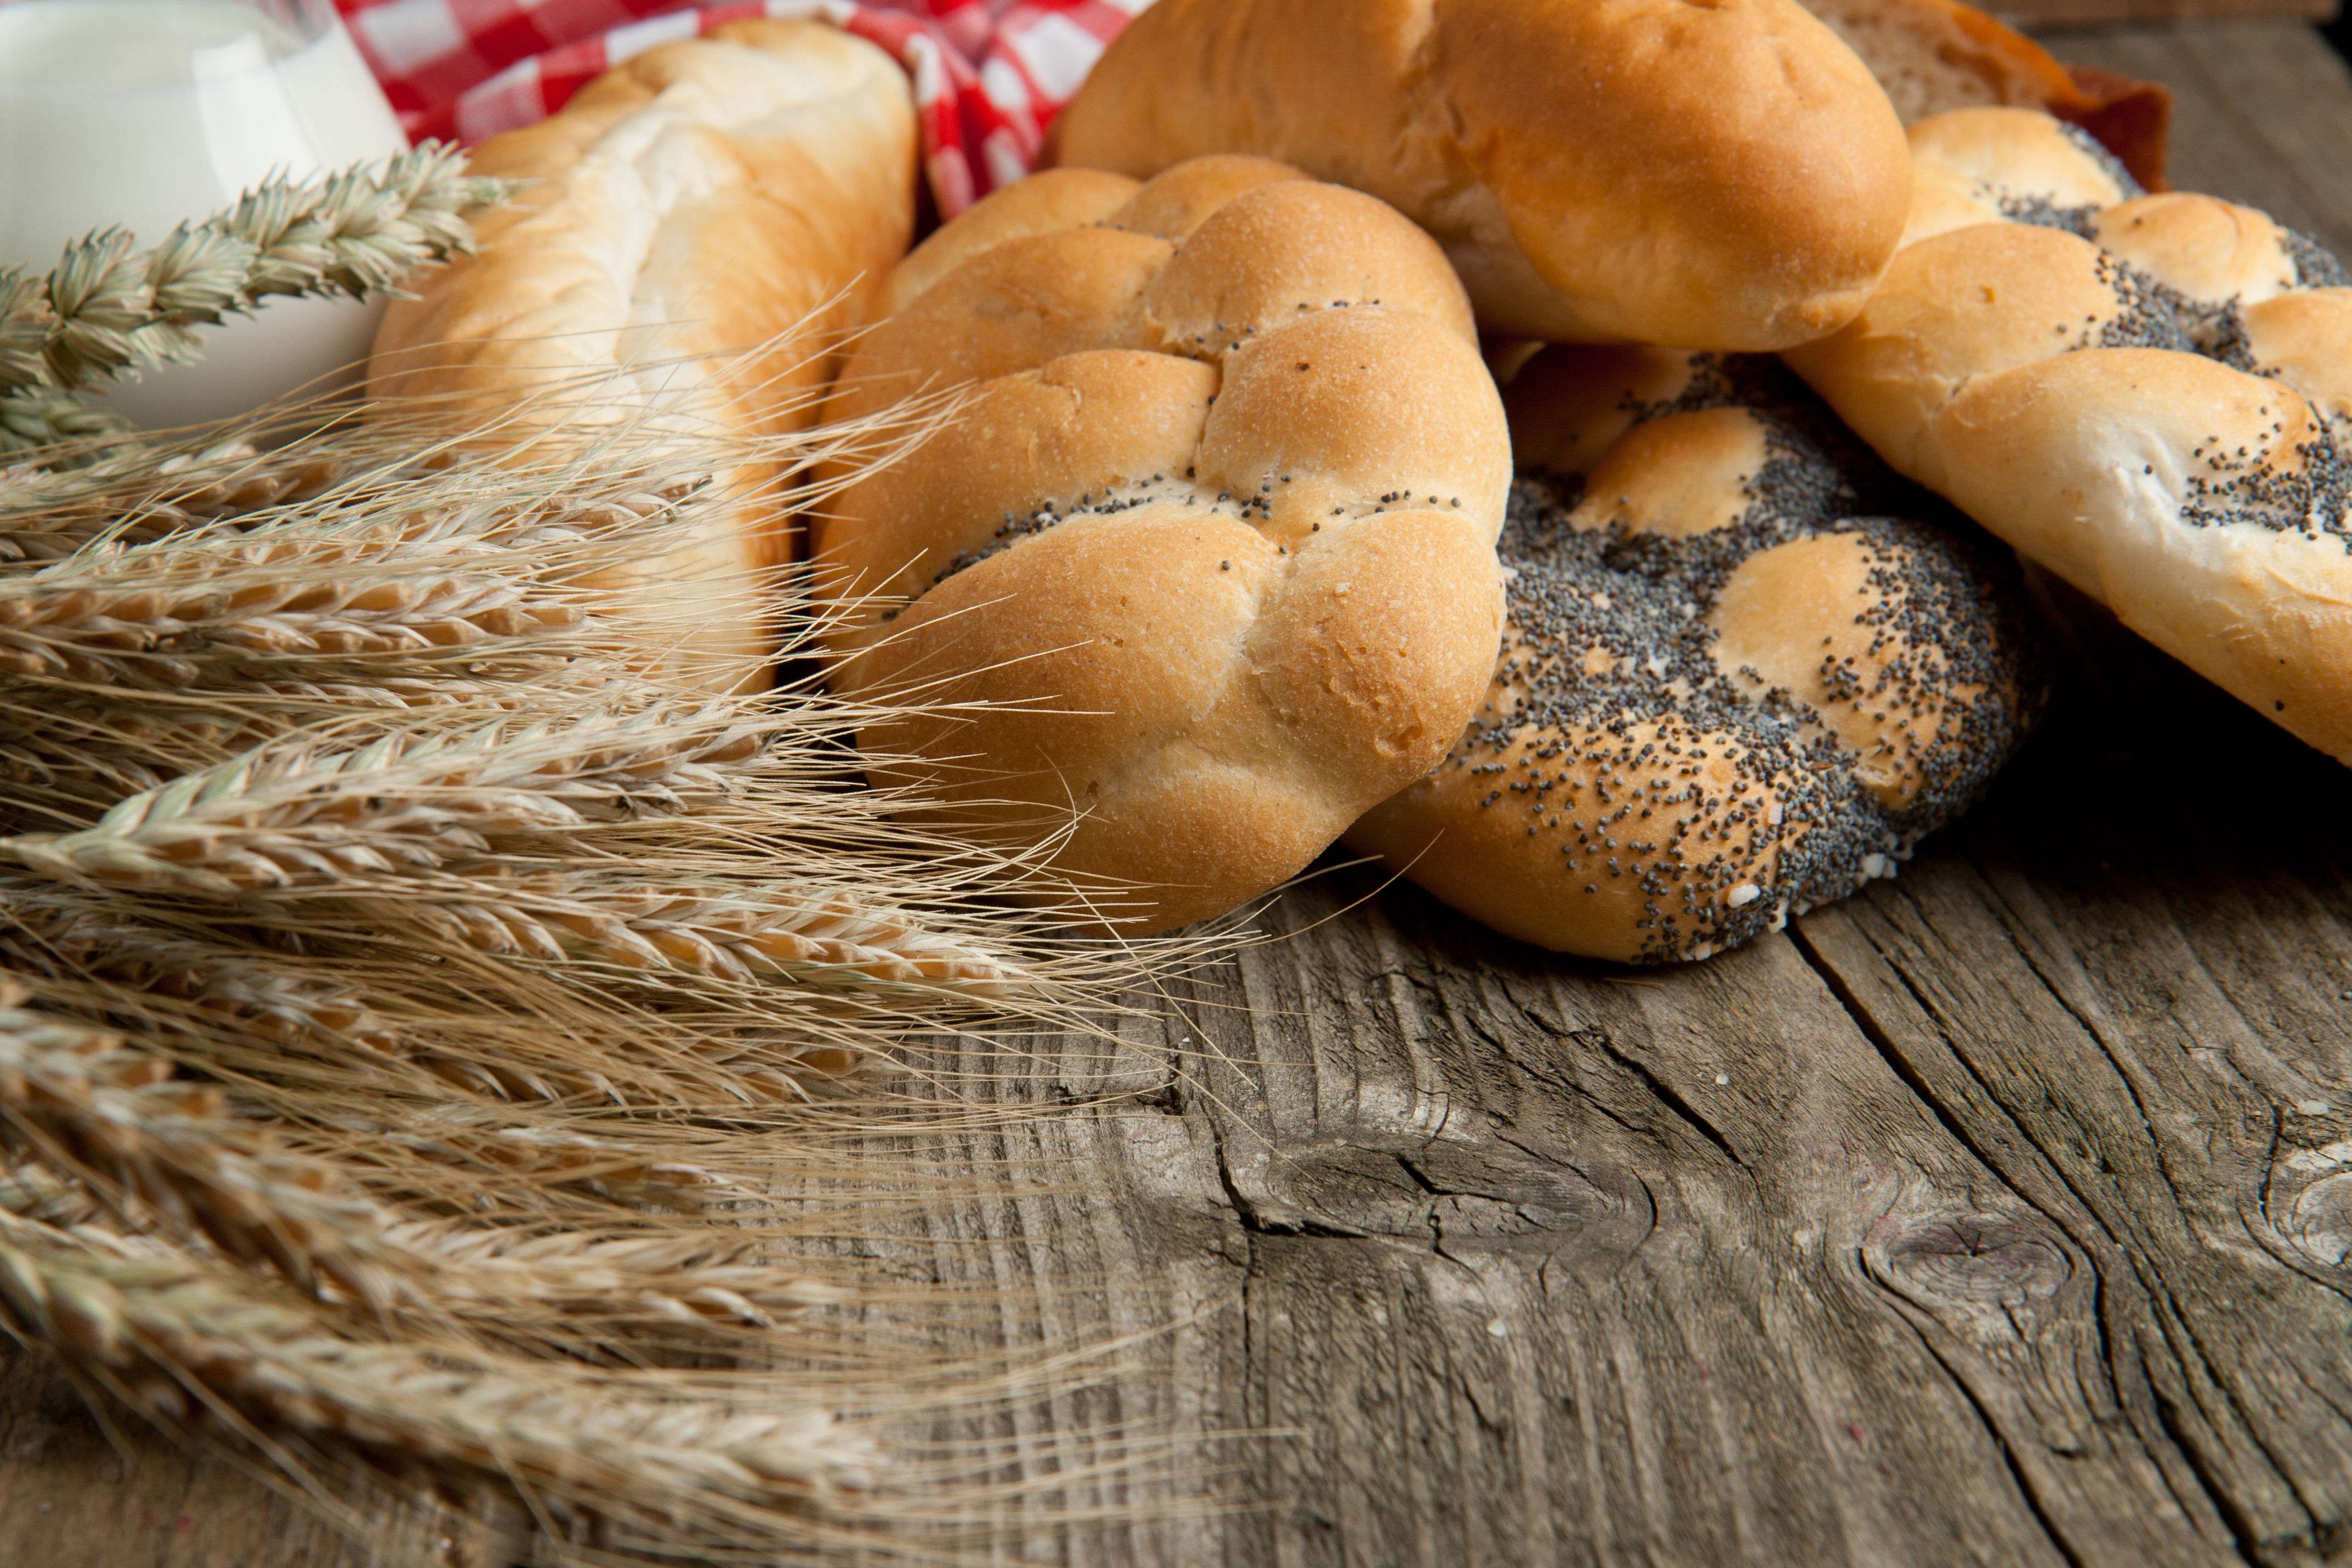 Is Gluten Intolerance Genetic? The answer may surprise you.